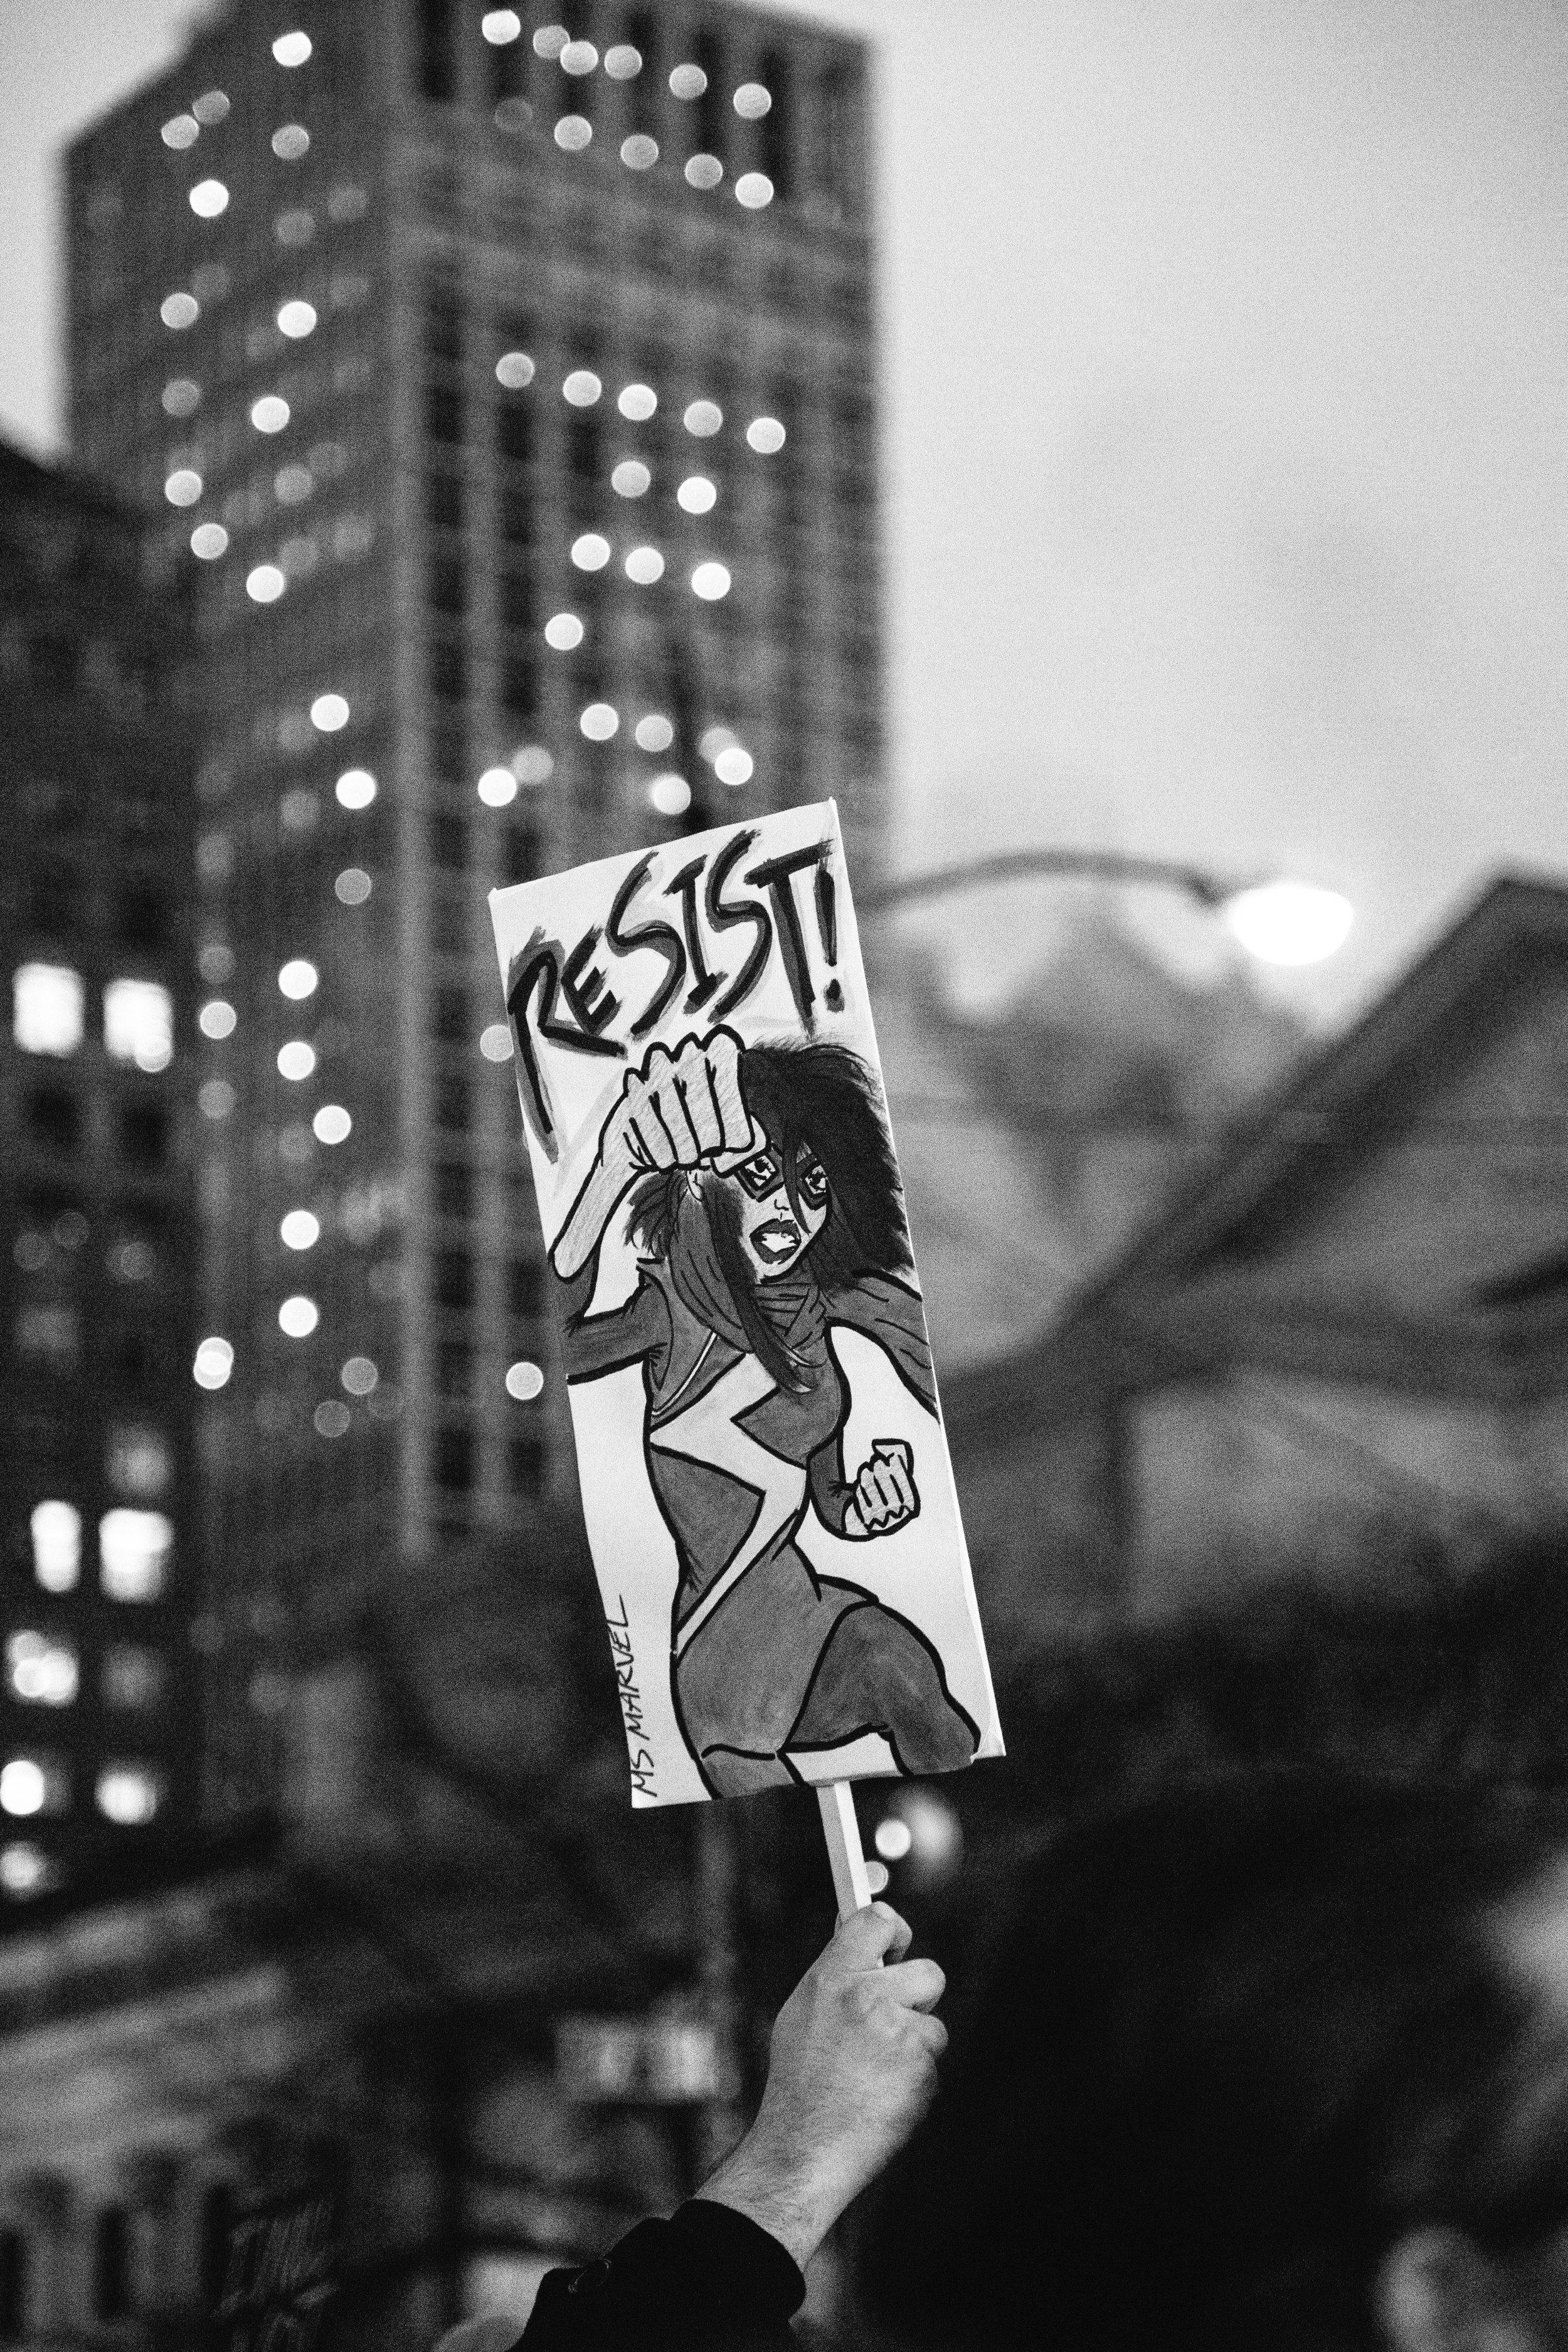 women's march on washington nyc protest signs-164.jpg